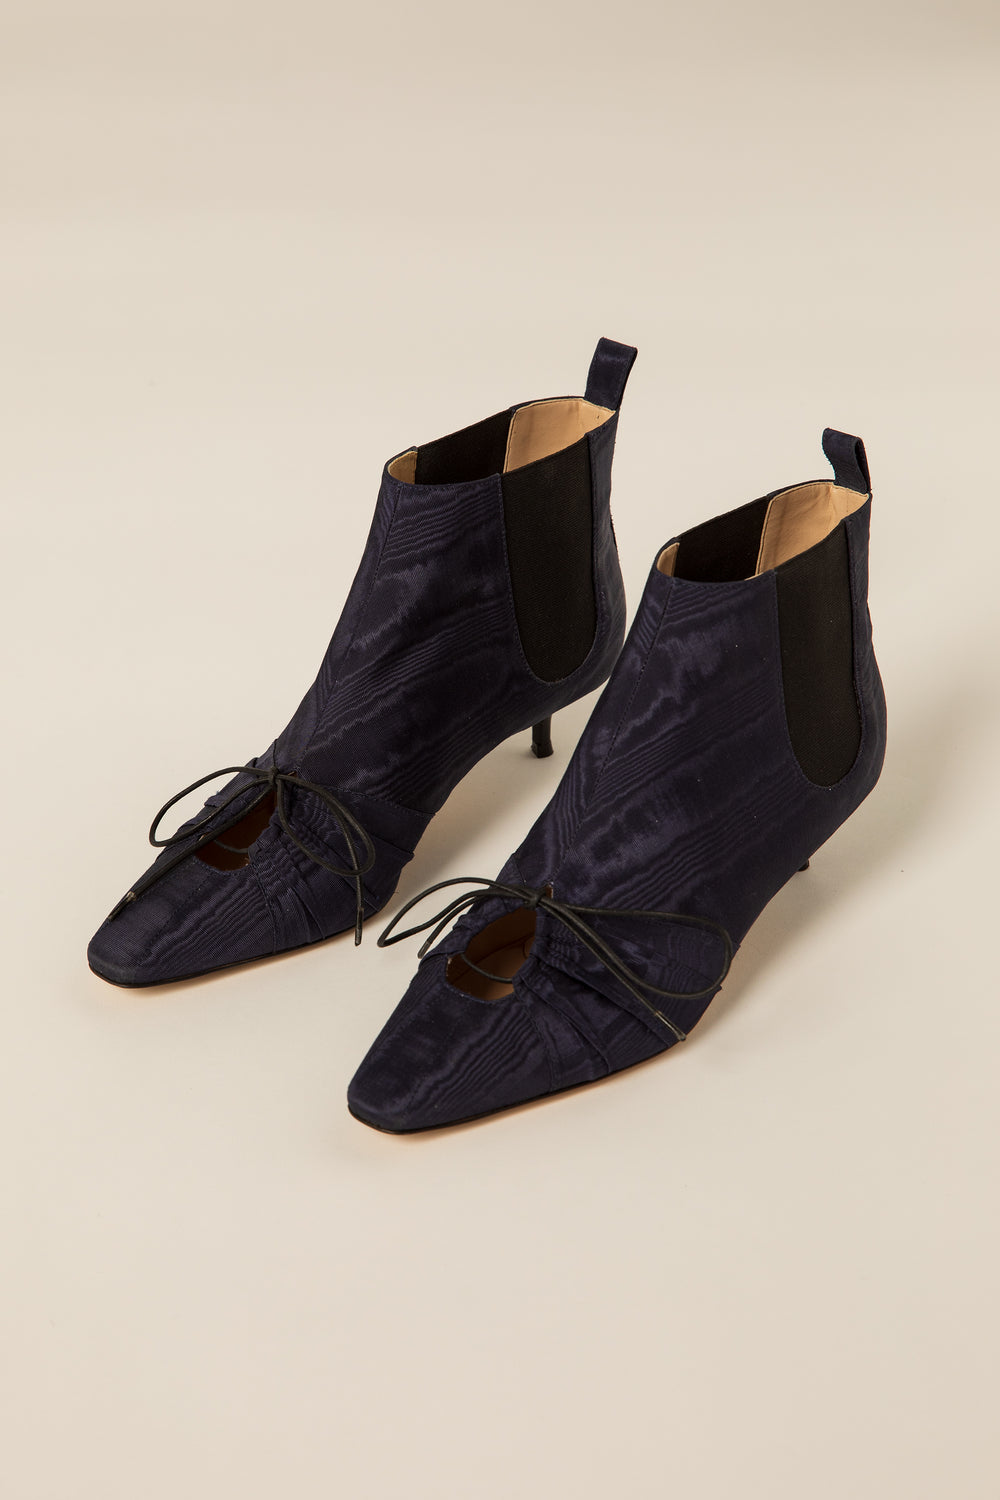 "Rosie Assoulin Fall 2019 Pleated Ankle Booties. Kitten heeled ankle boot. Adjustable front laces. Keyhole cutout. Elastic stretch panels. Pull tab in back. 1.5"" heel. Navy. Sizes 35 - 41."